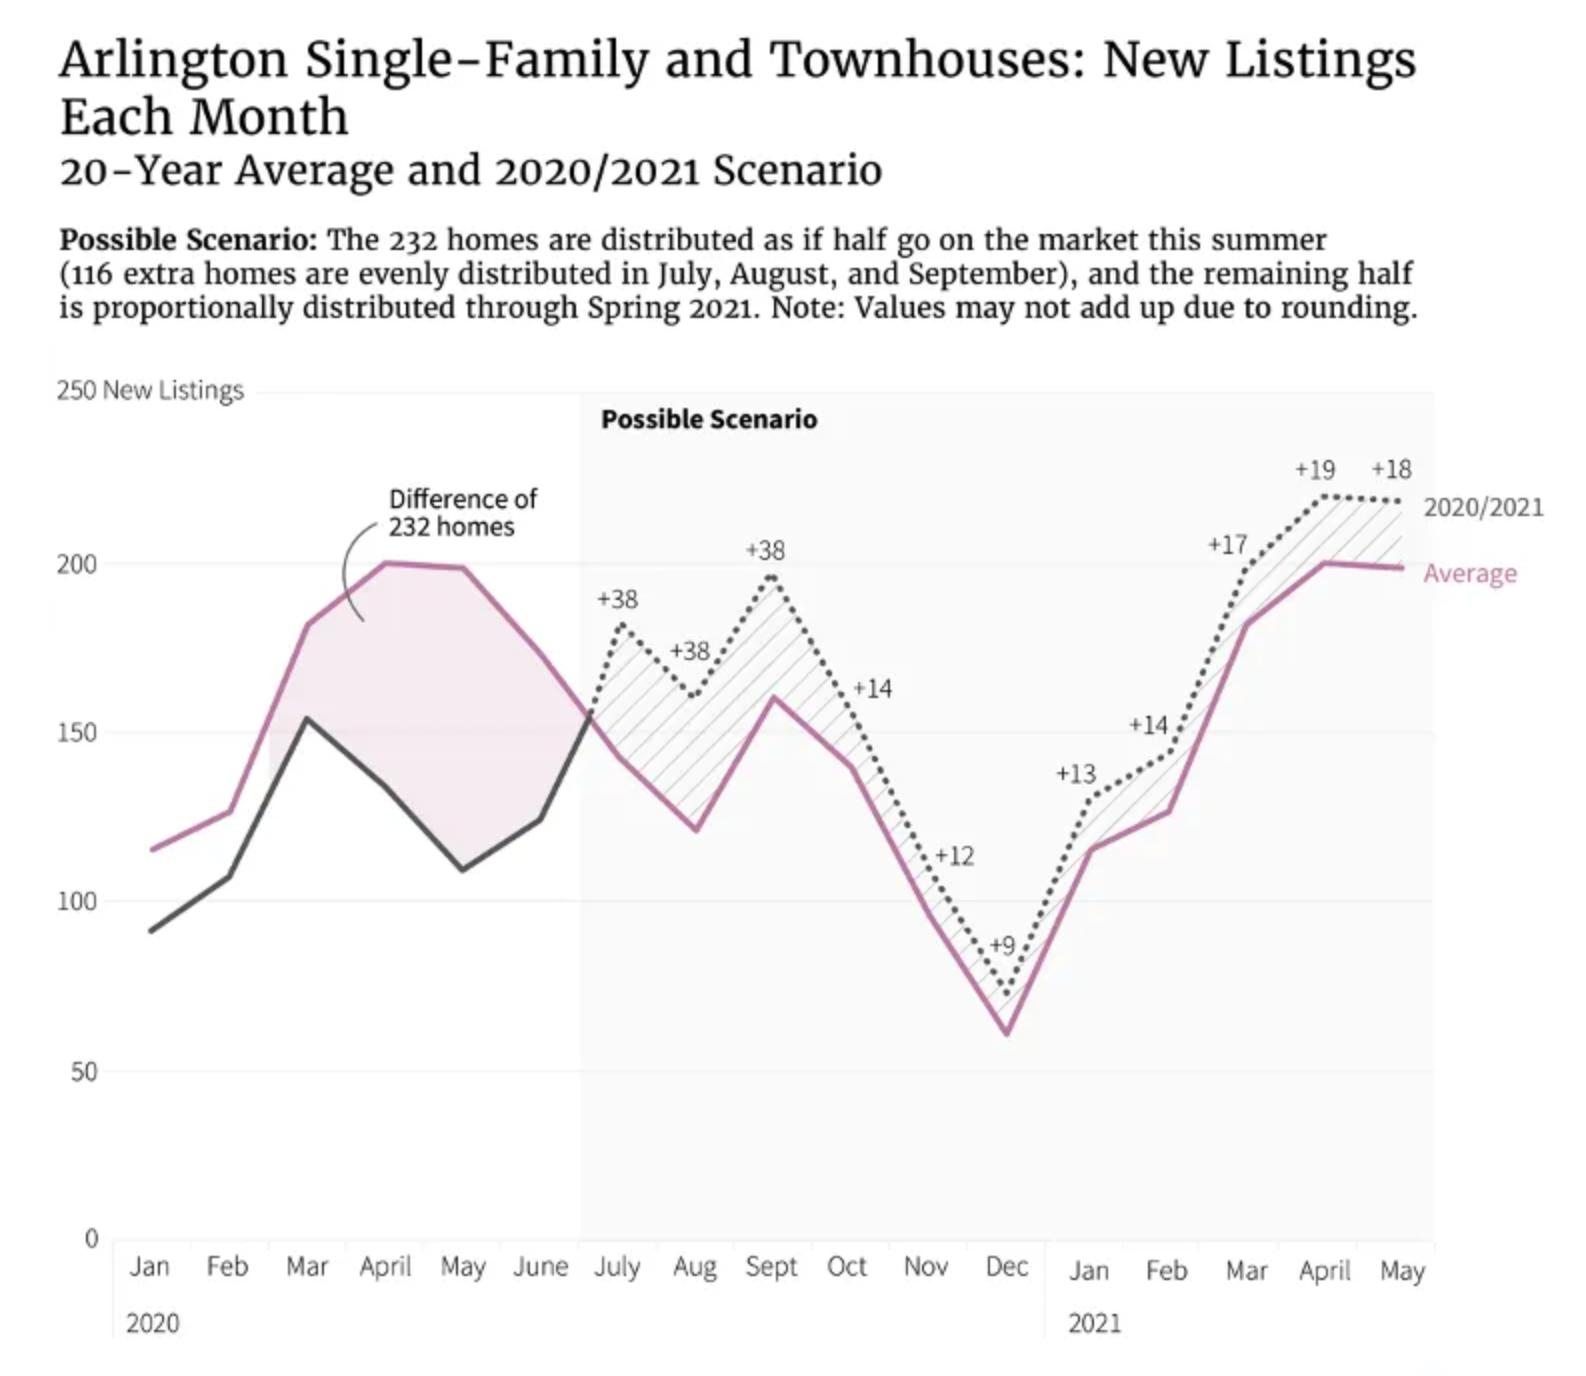 A line chart with the number of new single-family and townhouse listings in Airlington per month, in 2020 and 2021